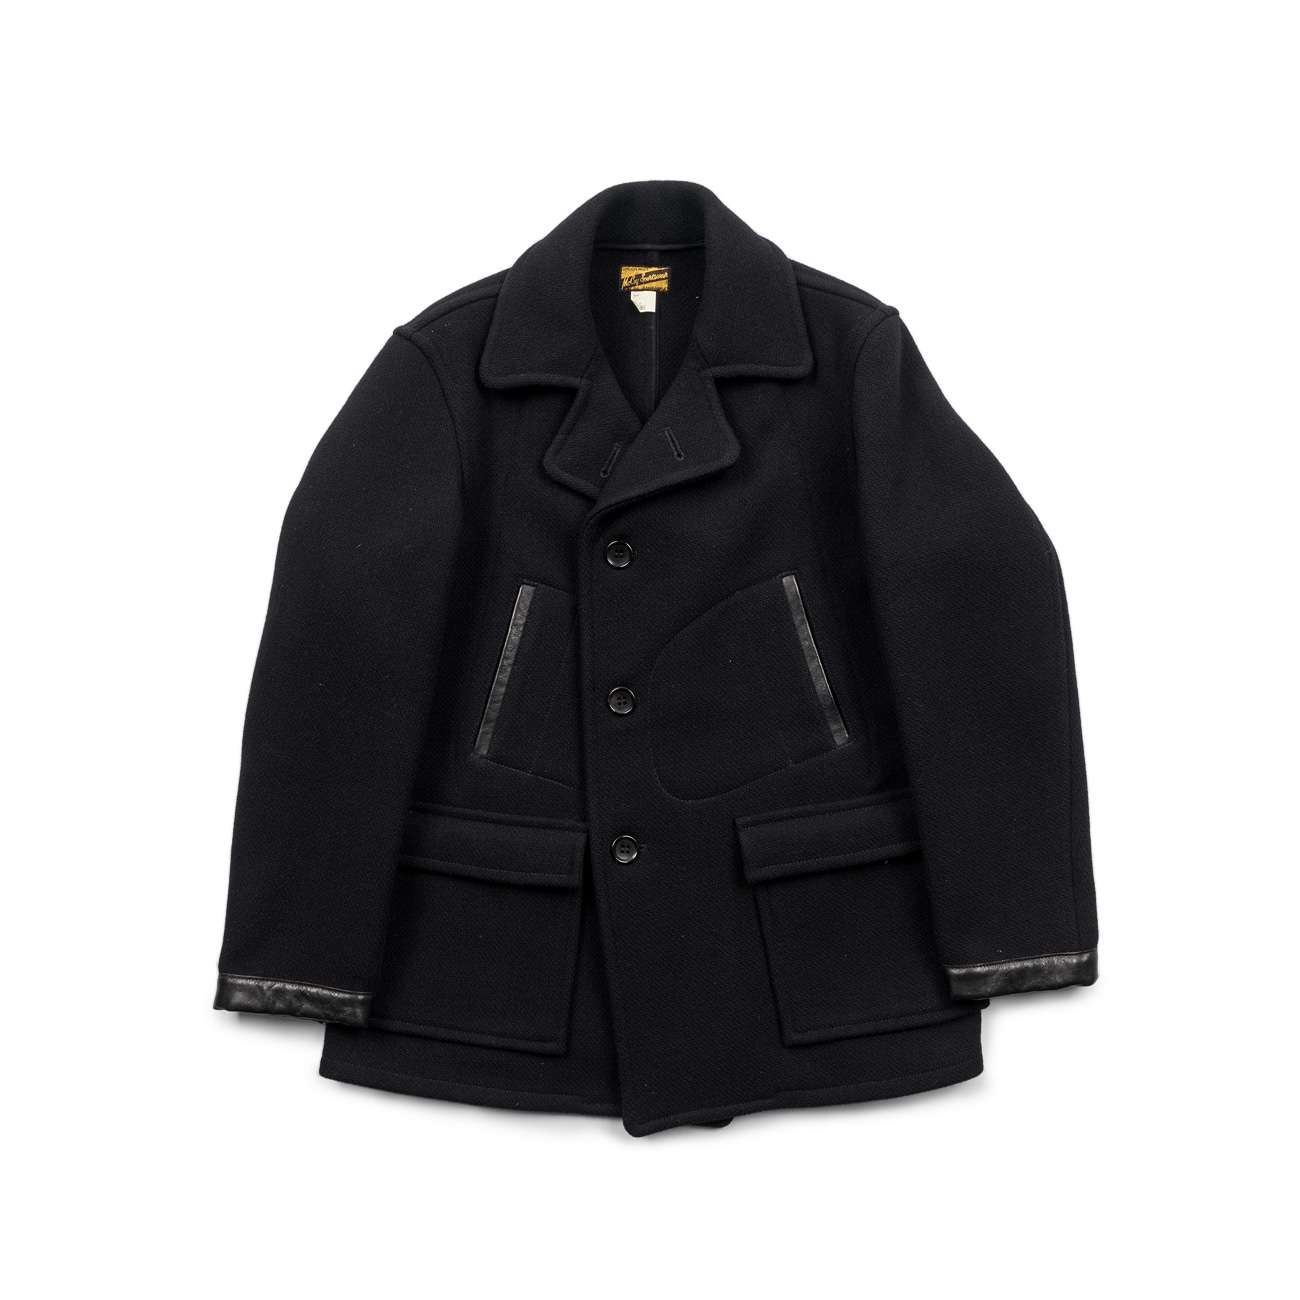 Four Pocket Wool Work Coat